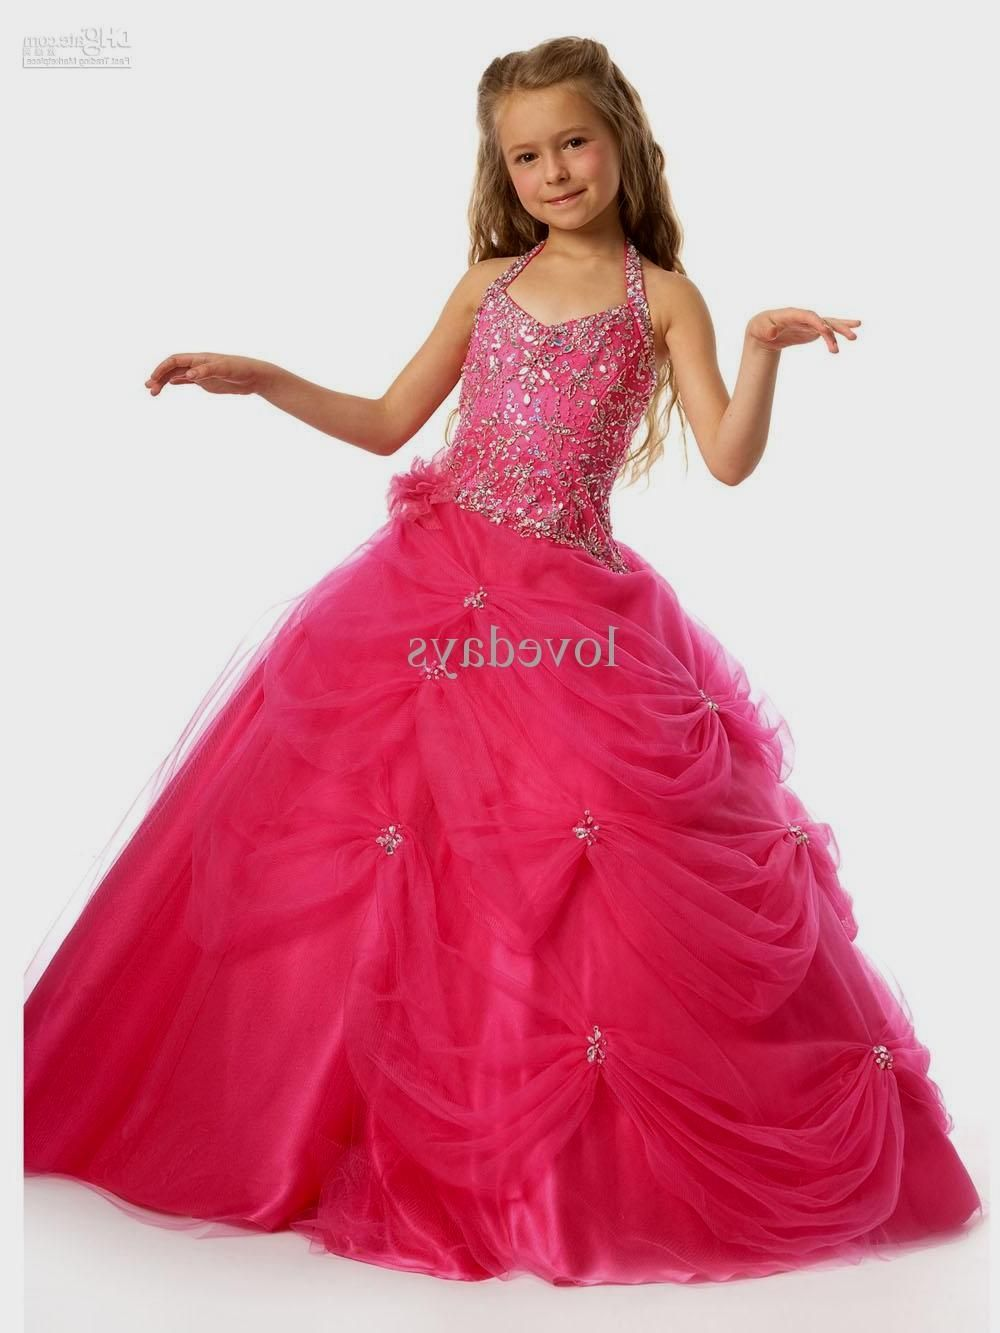 17+ Prom dresses for kids ideas ideas in 2021